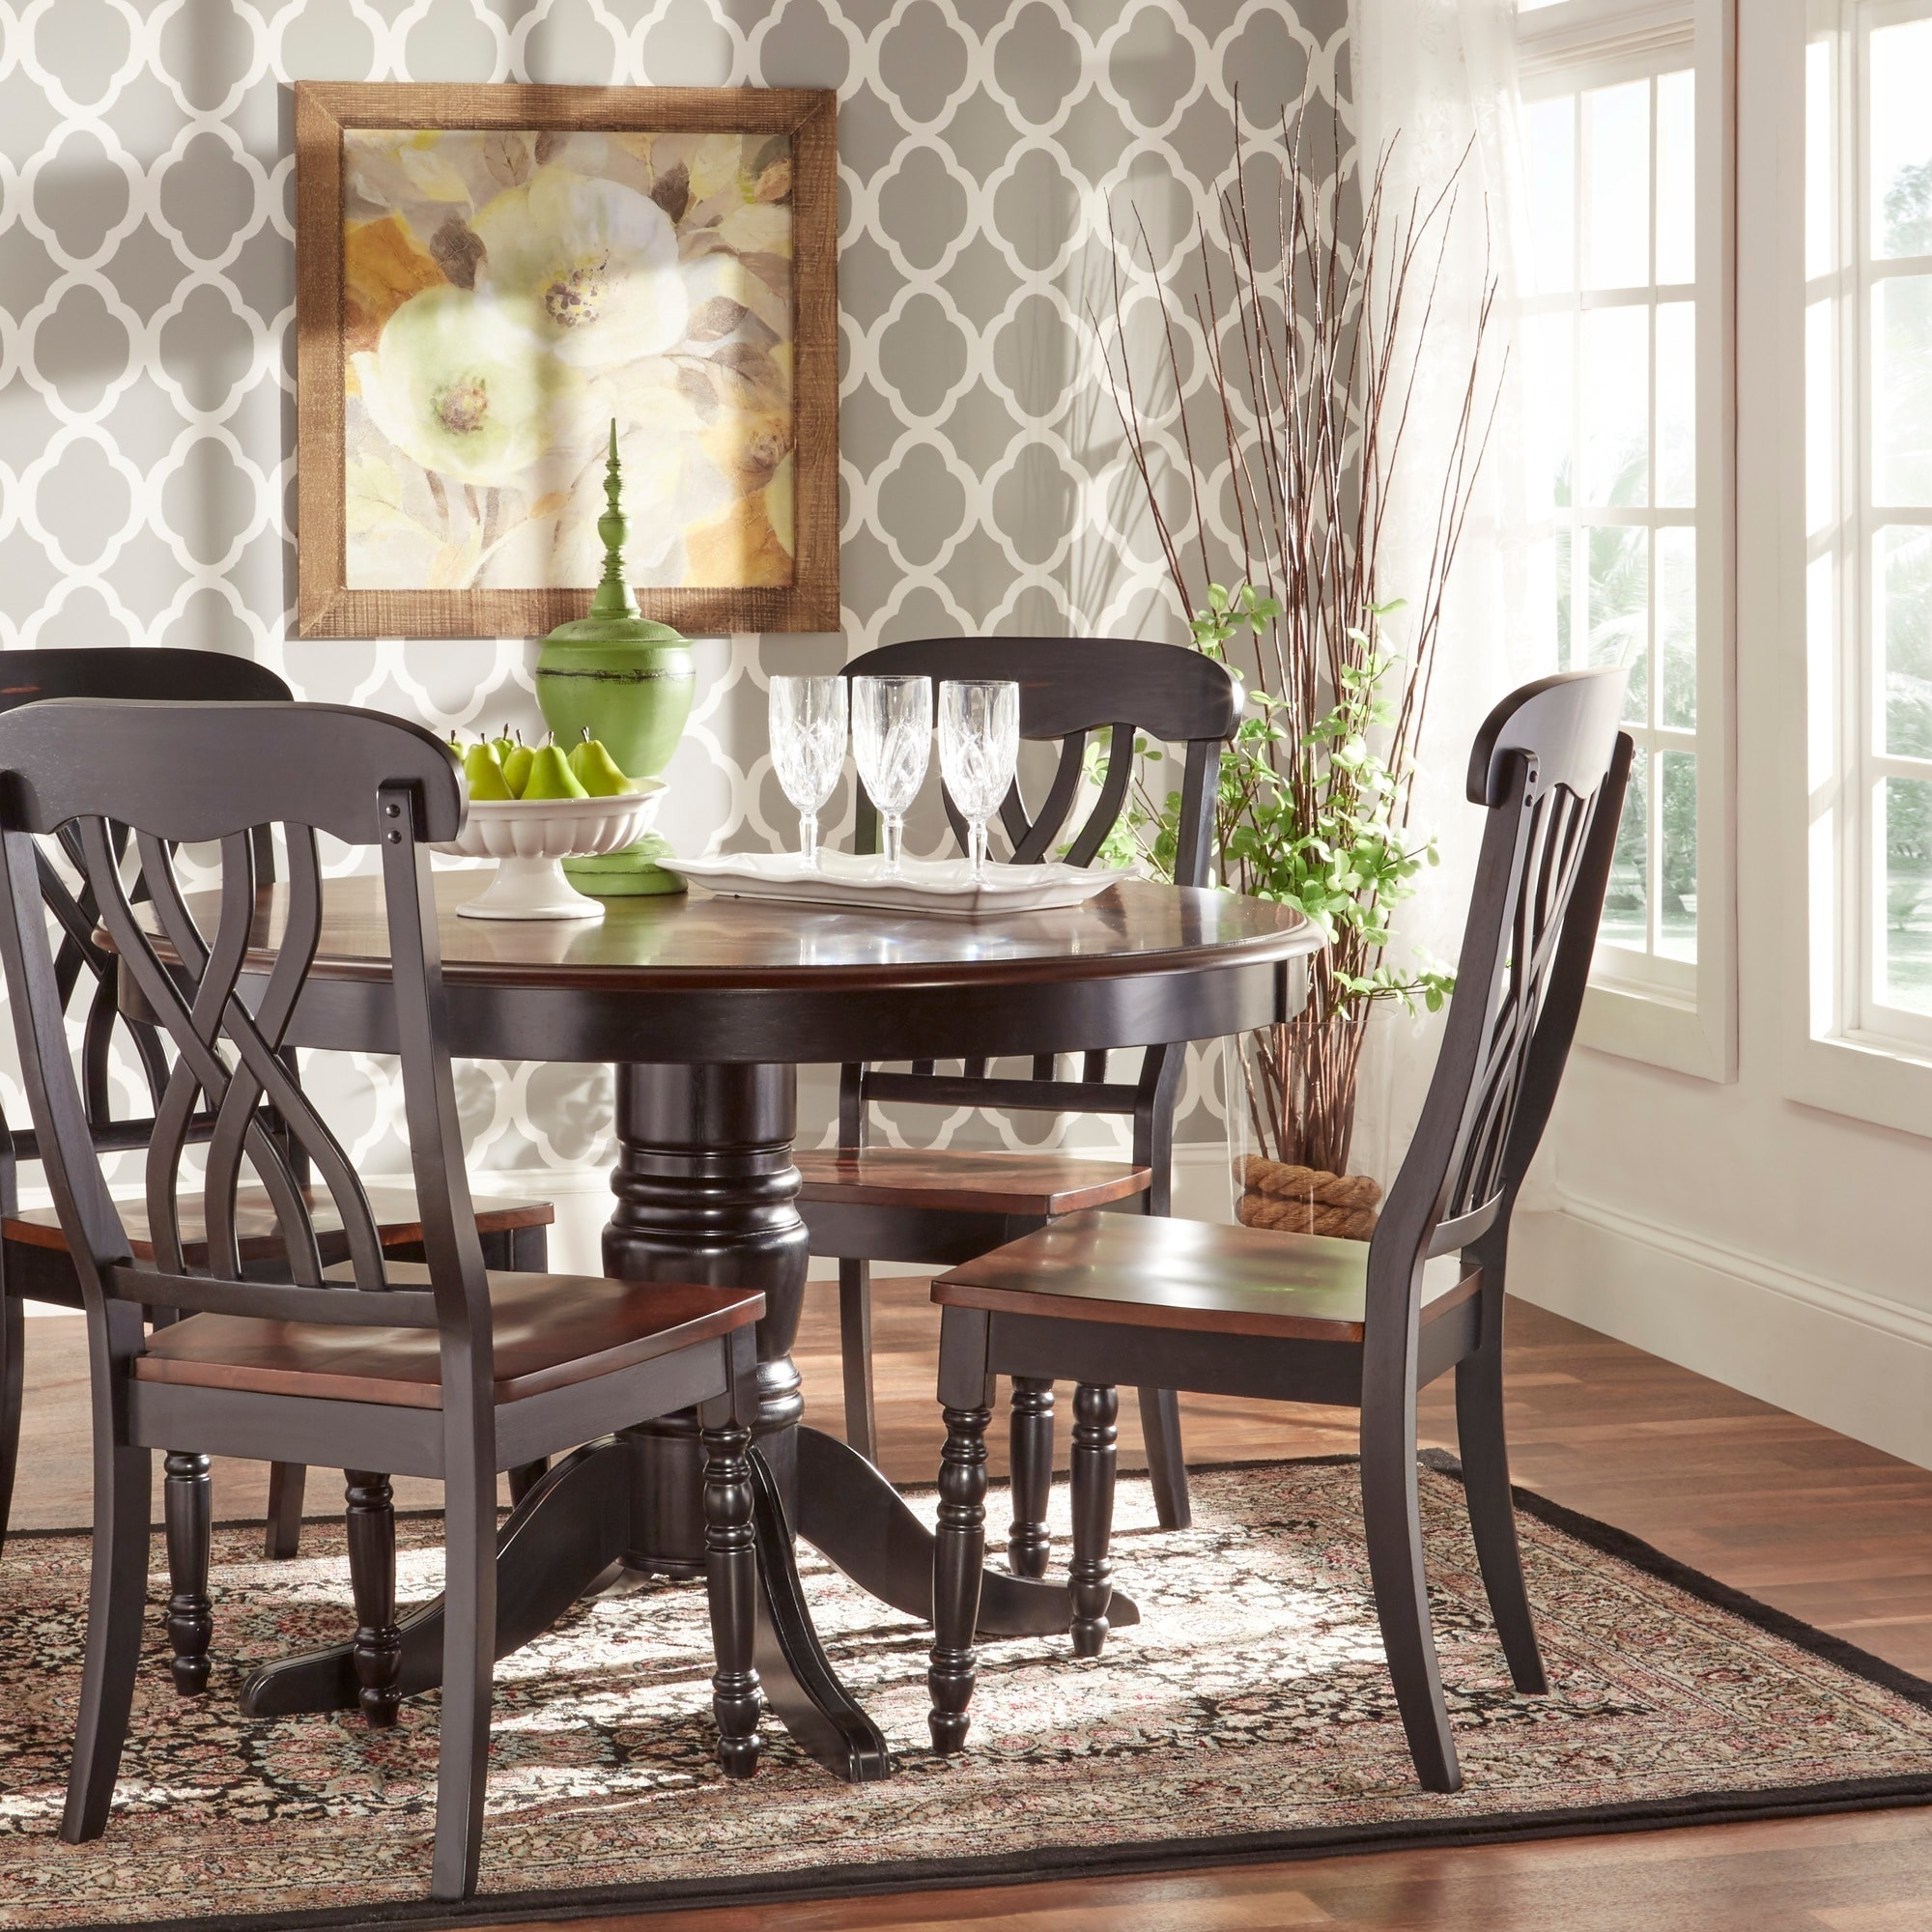 Mackenzie Country Style Two-tone Dining Chairs (Set of 2) by iNSPIRE Q  Classic - Free Shipping Today - Overstock.com - 12253663